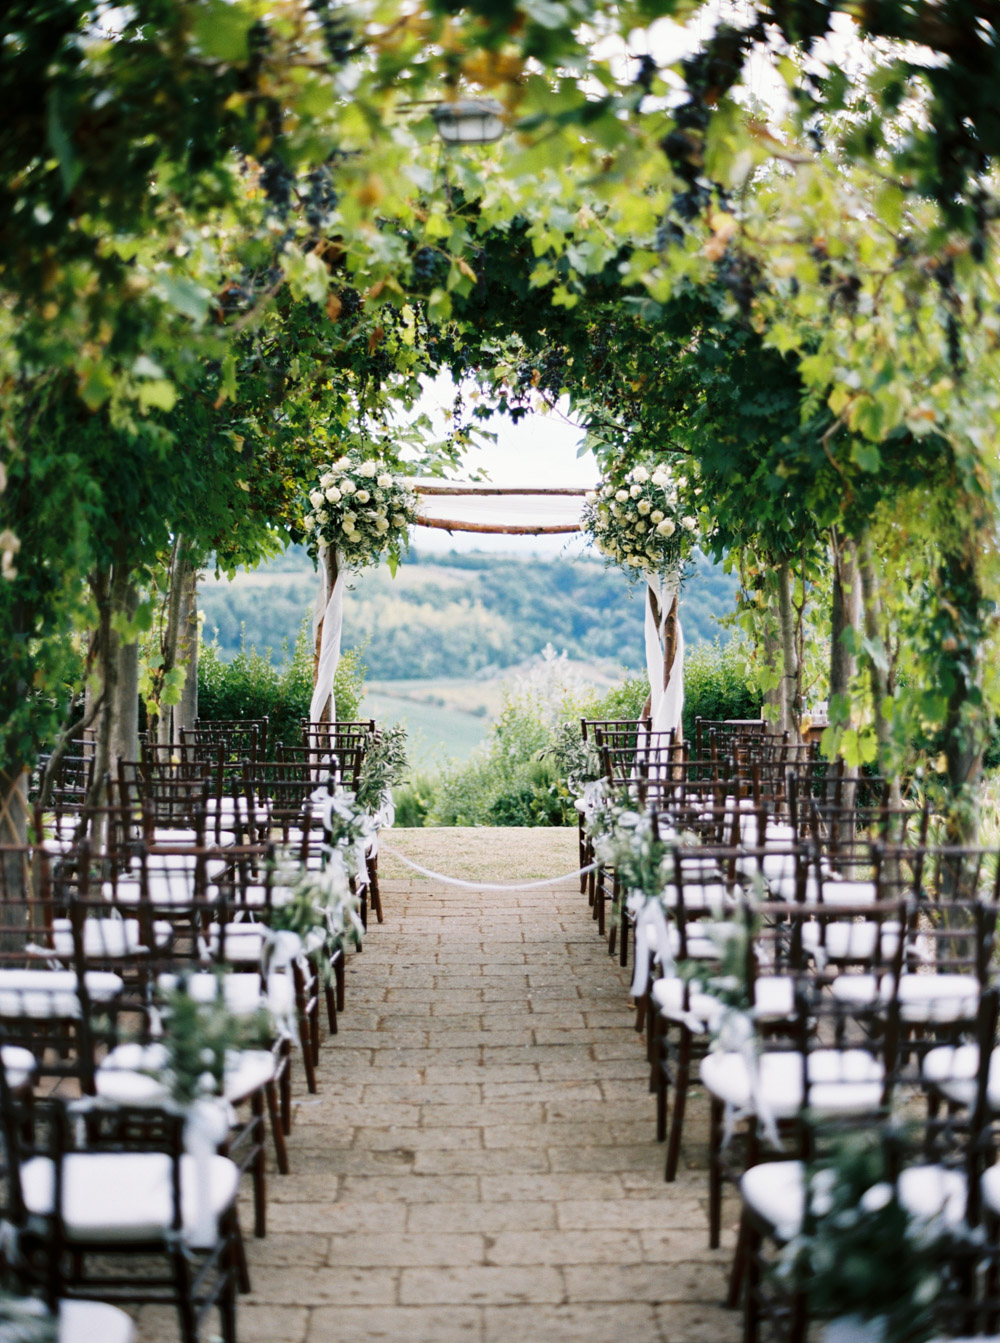 wedding venue in chianti ceremony setting overlooking the landscape